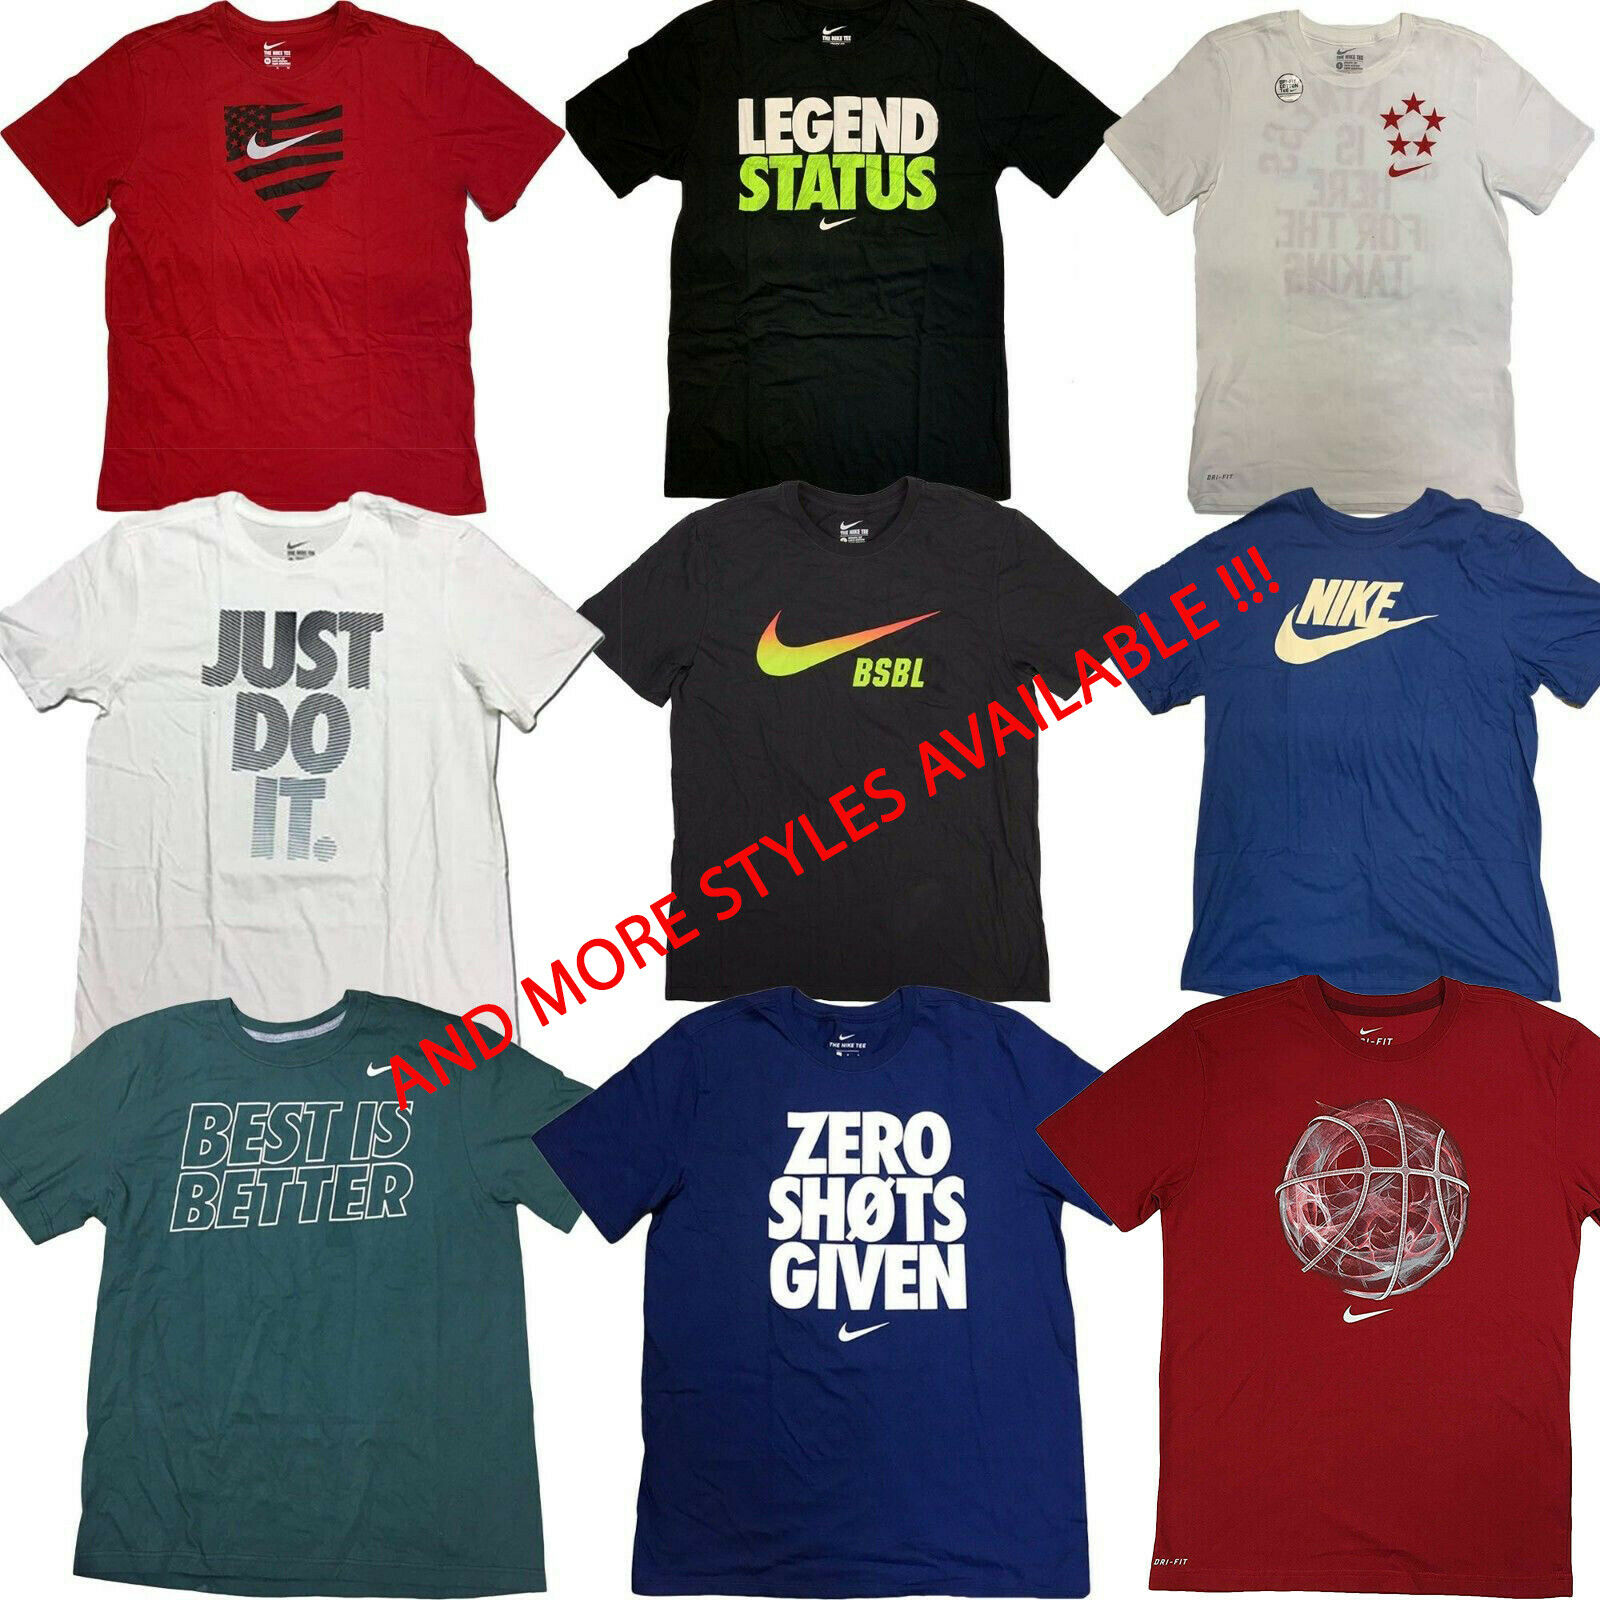 0282f978 Nike Mens Legend Swoosh Short Sleeve Running T Shirt – EDGE ...